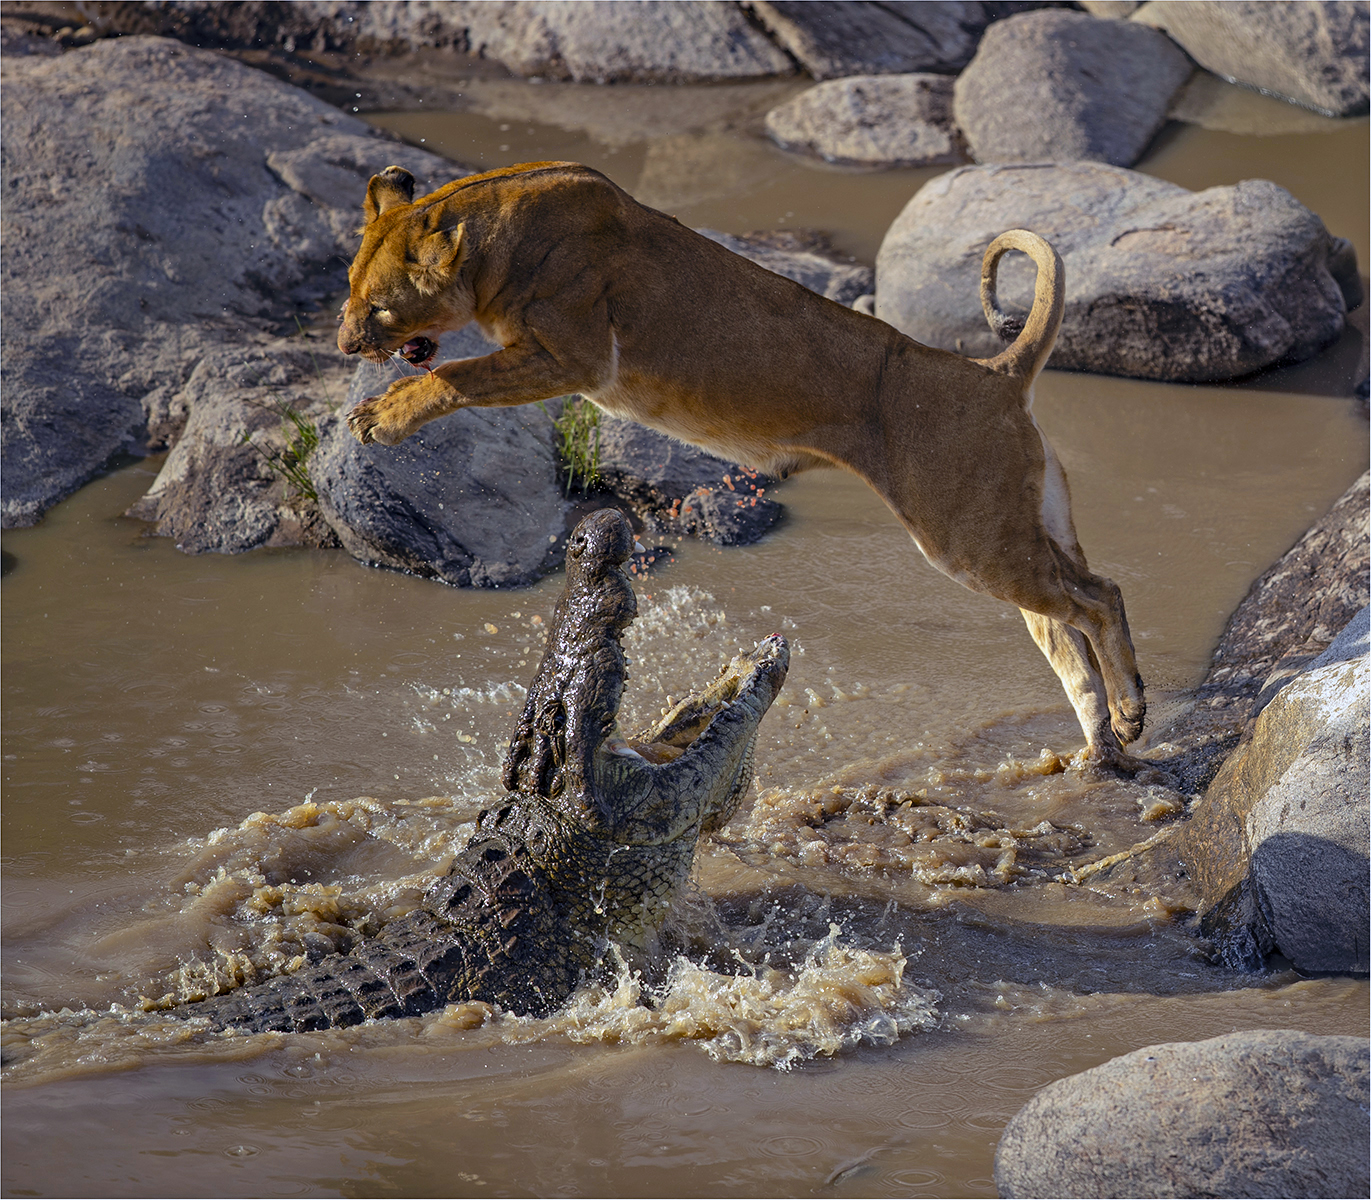 Lioness Leaping the Jaws of a Crocodile - Sue Green ARPS DPAGB BPE*2 - BPE Ribbon